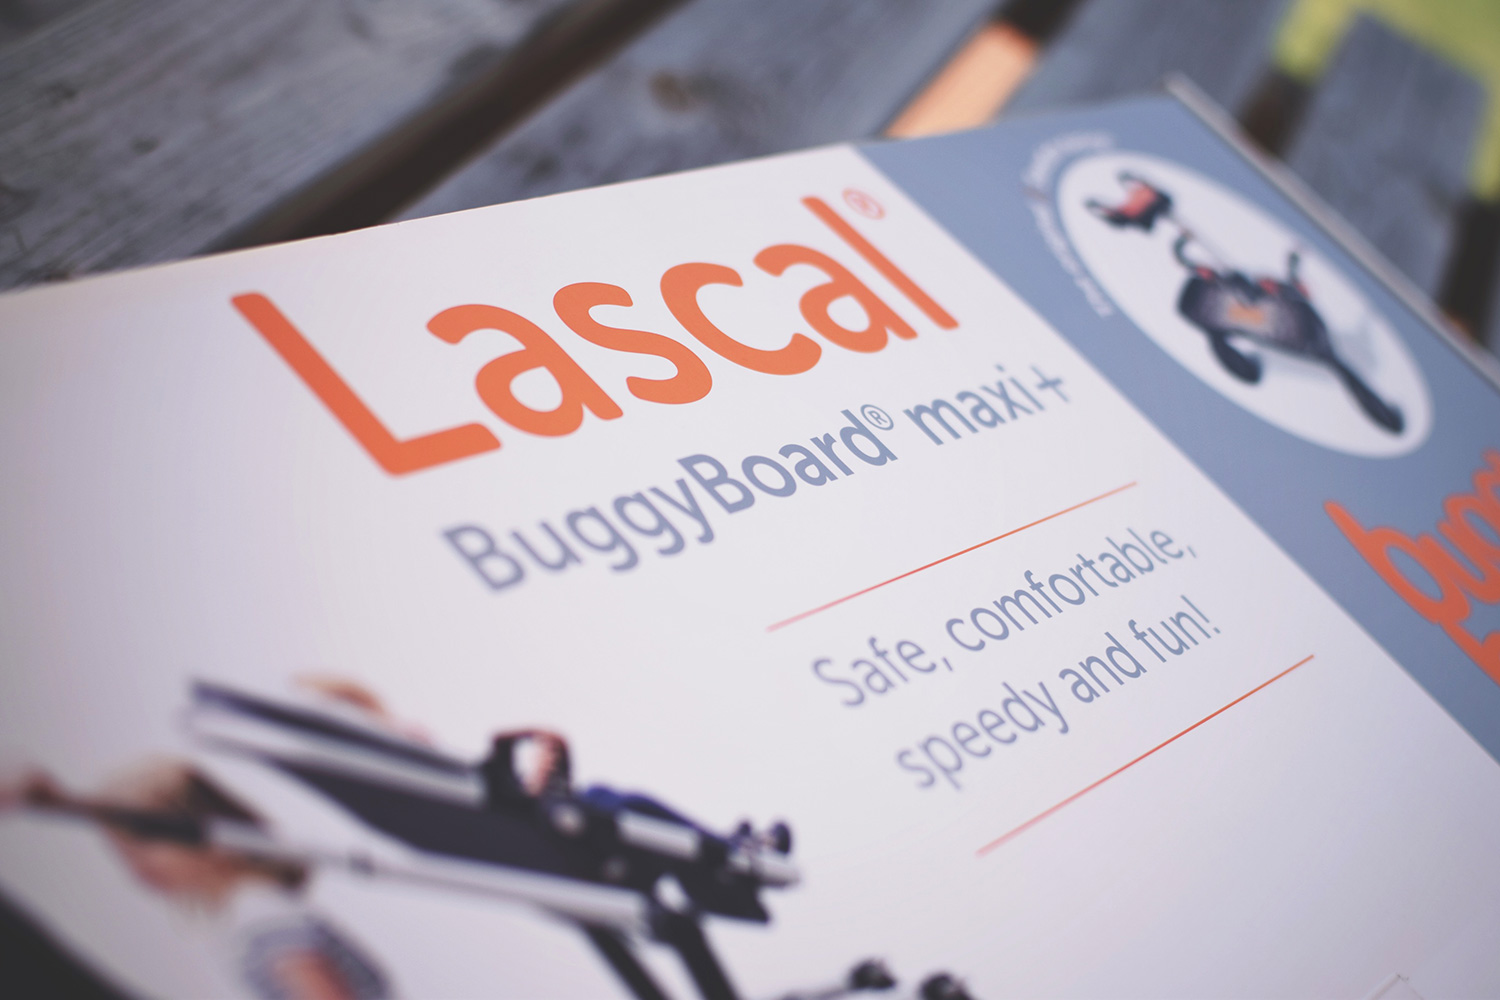 The Lascal BuggyBoard Maxi+ - The alternative to a double buggy for Mums with a newborn baby and toddler/preschooler